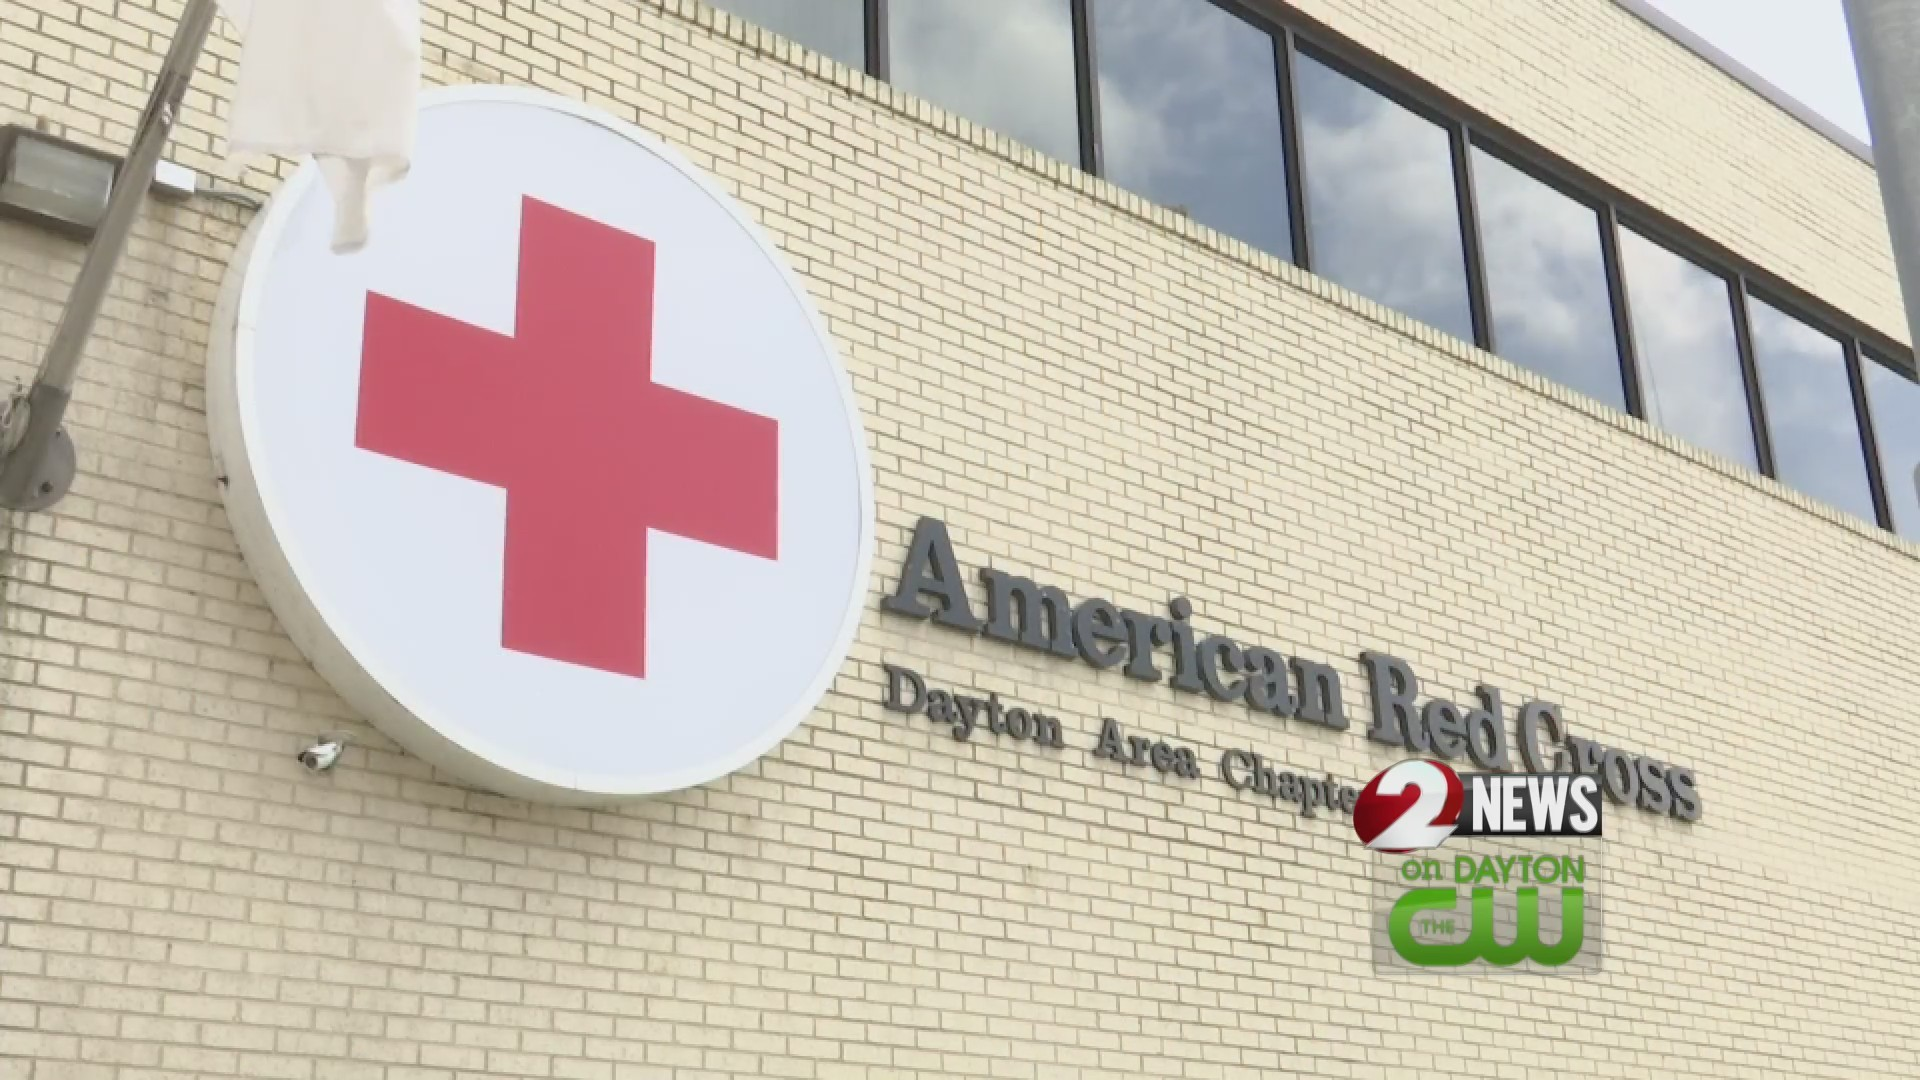 Dayton area Red Cross volunteers head to Great Plains disaster areas